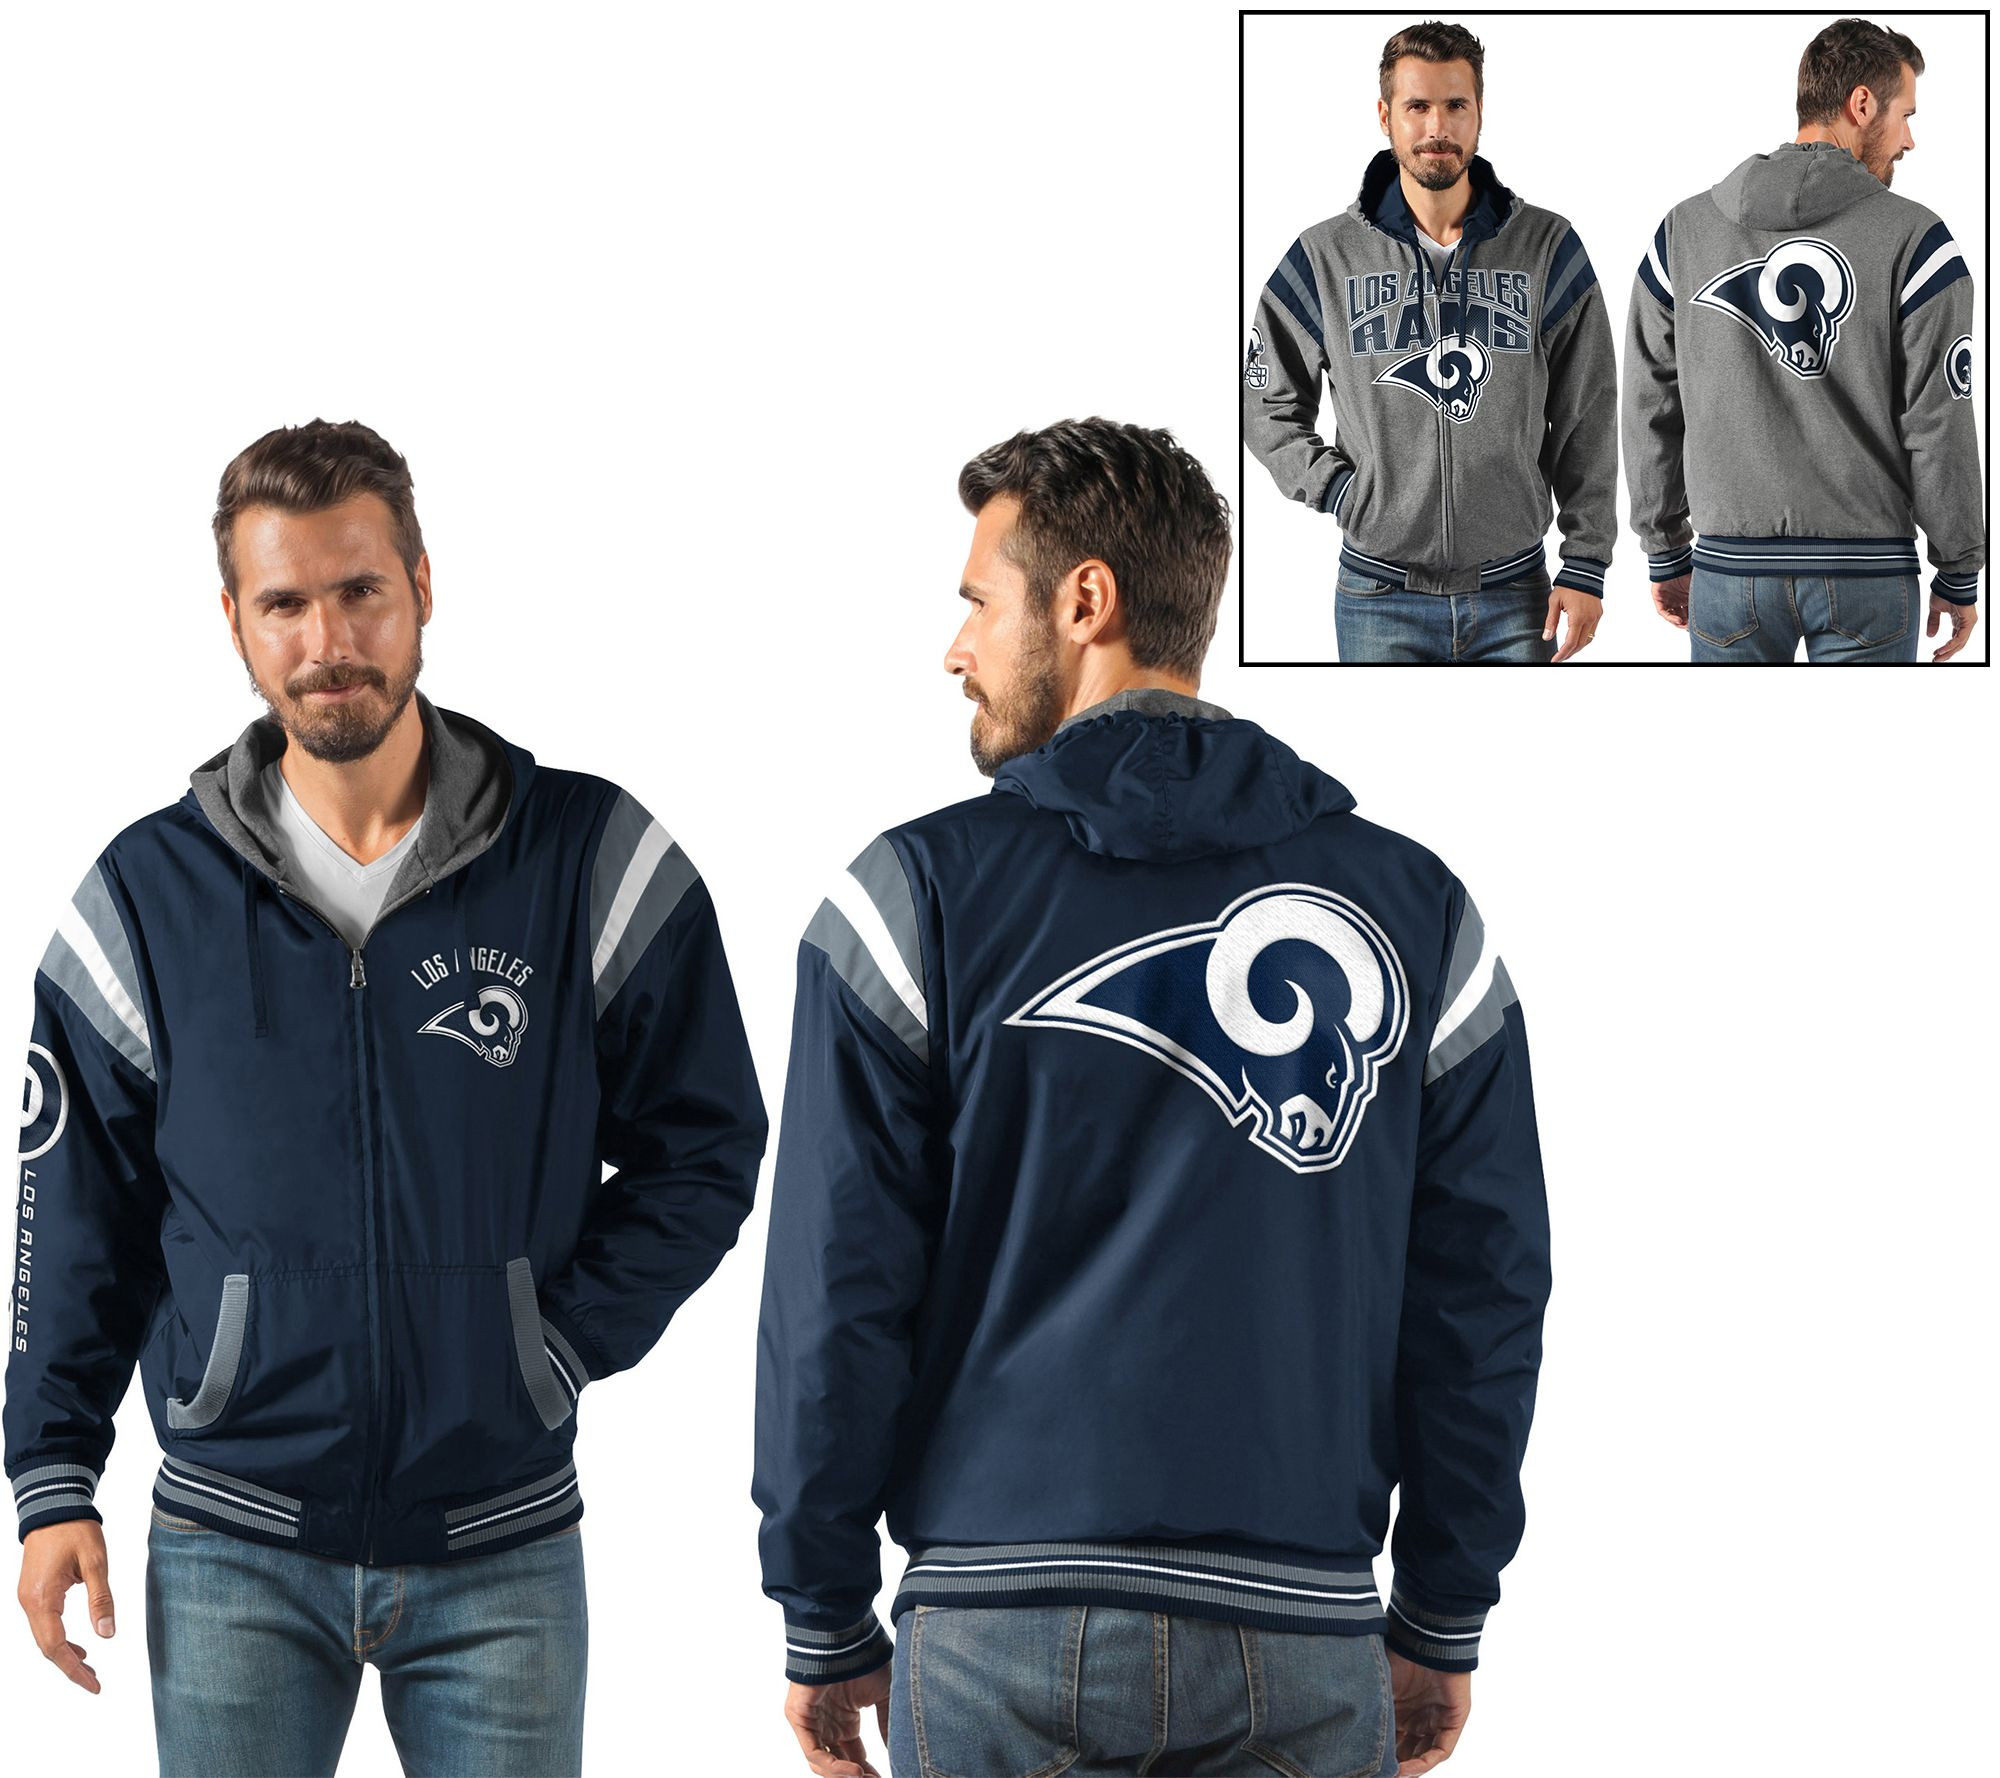 e73eaab11e NFL Ultimate Fan Reversible Hooded Full Zip Jacket - Page 1 — QVC.com